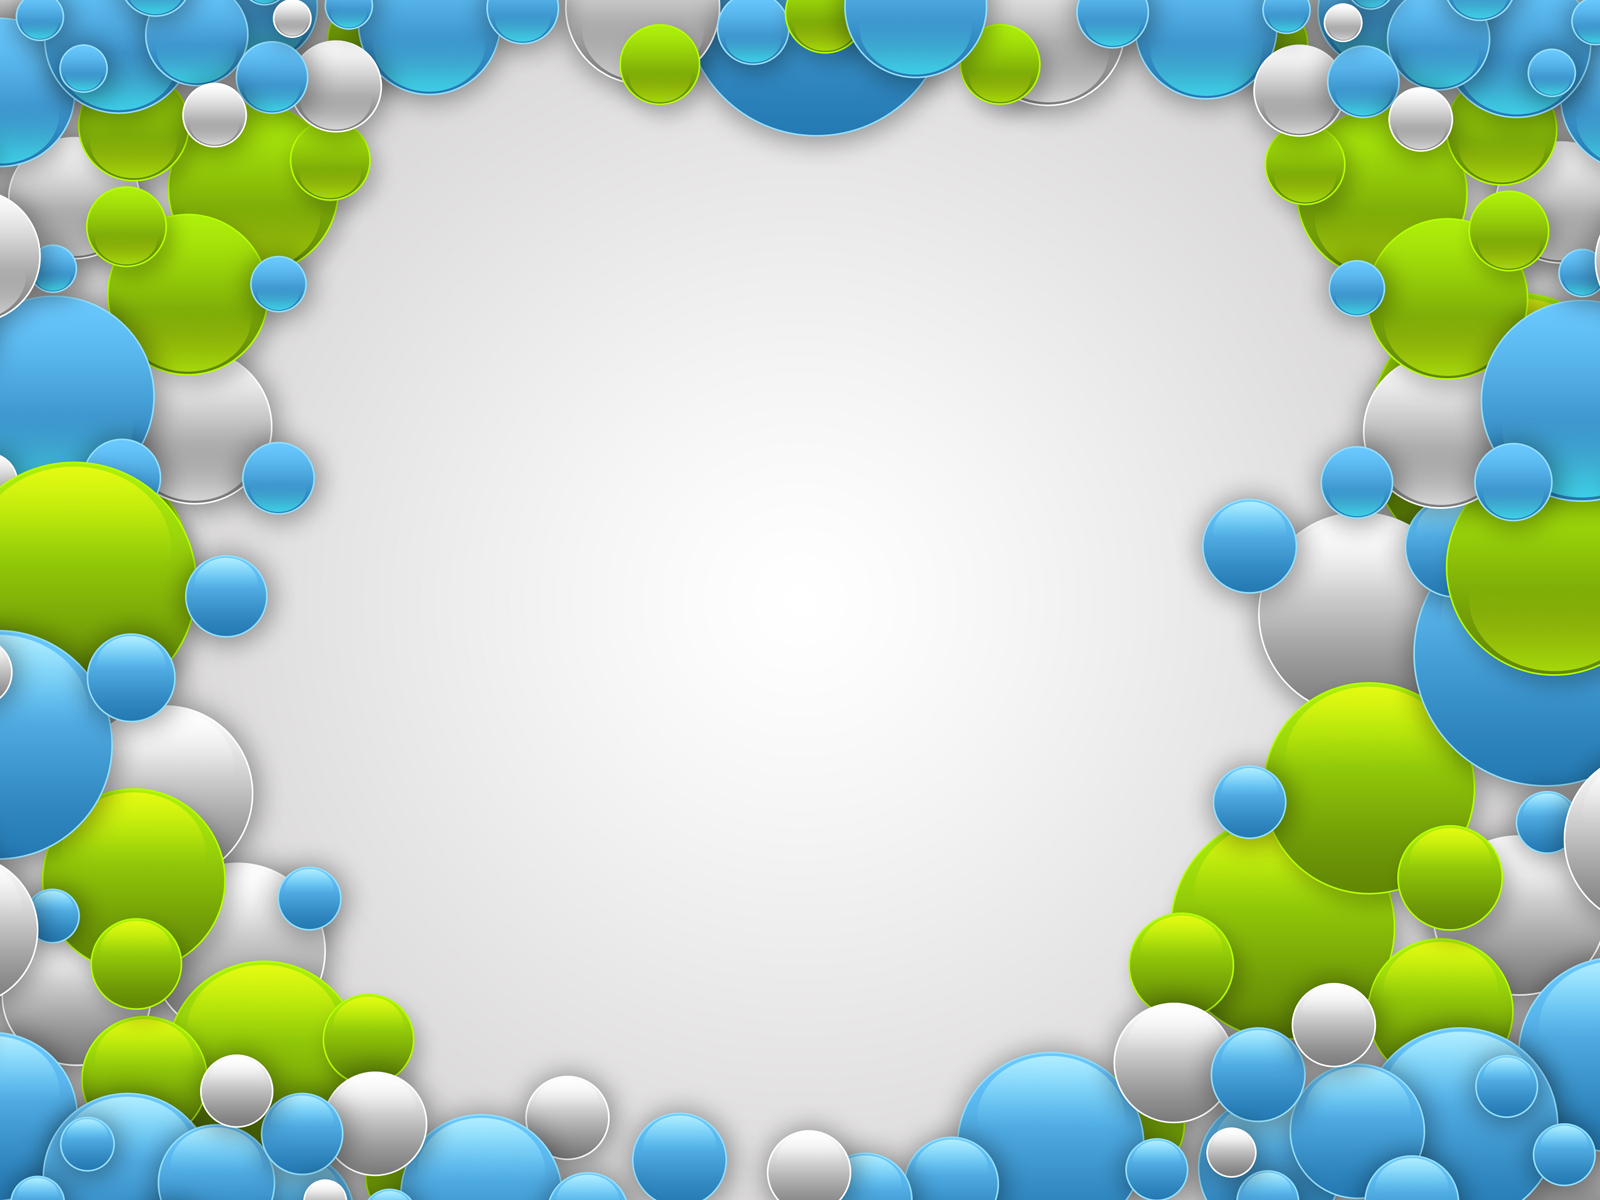 Border and Frame PowerPoint BackgroundsWallpapers Download   PPT 1600x1200